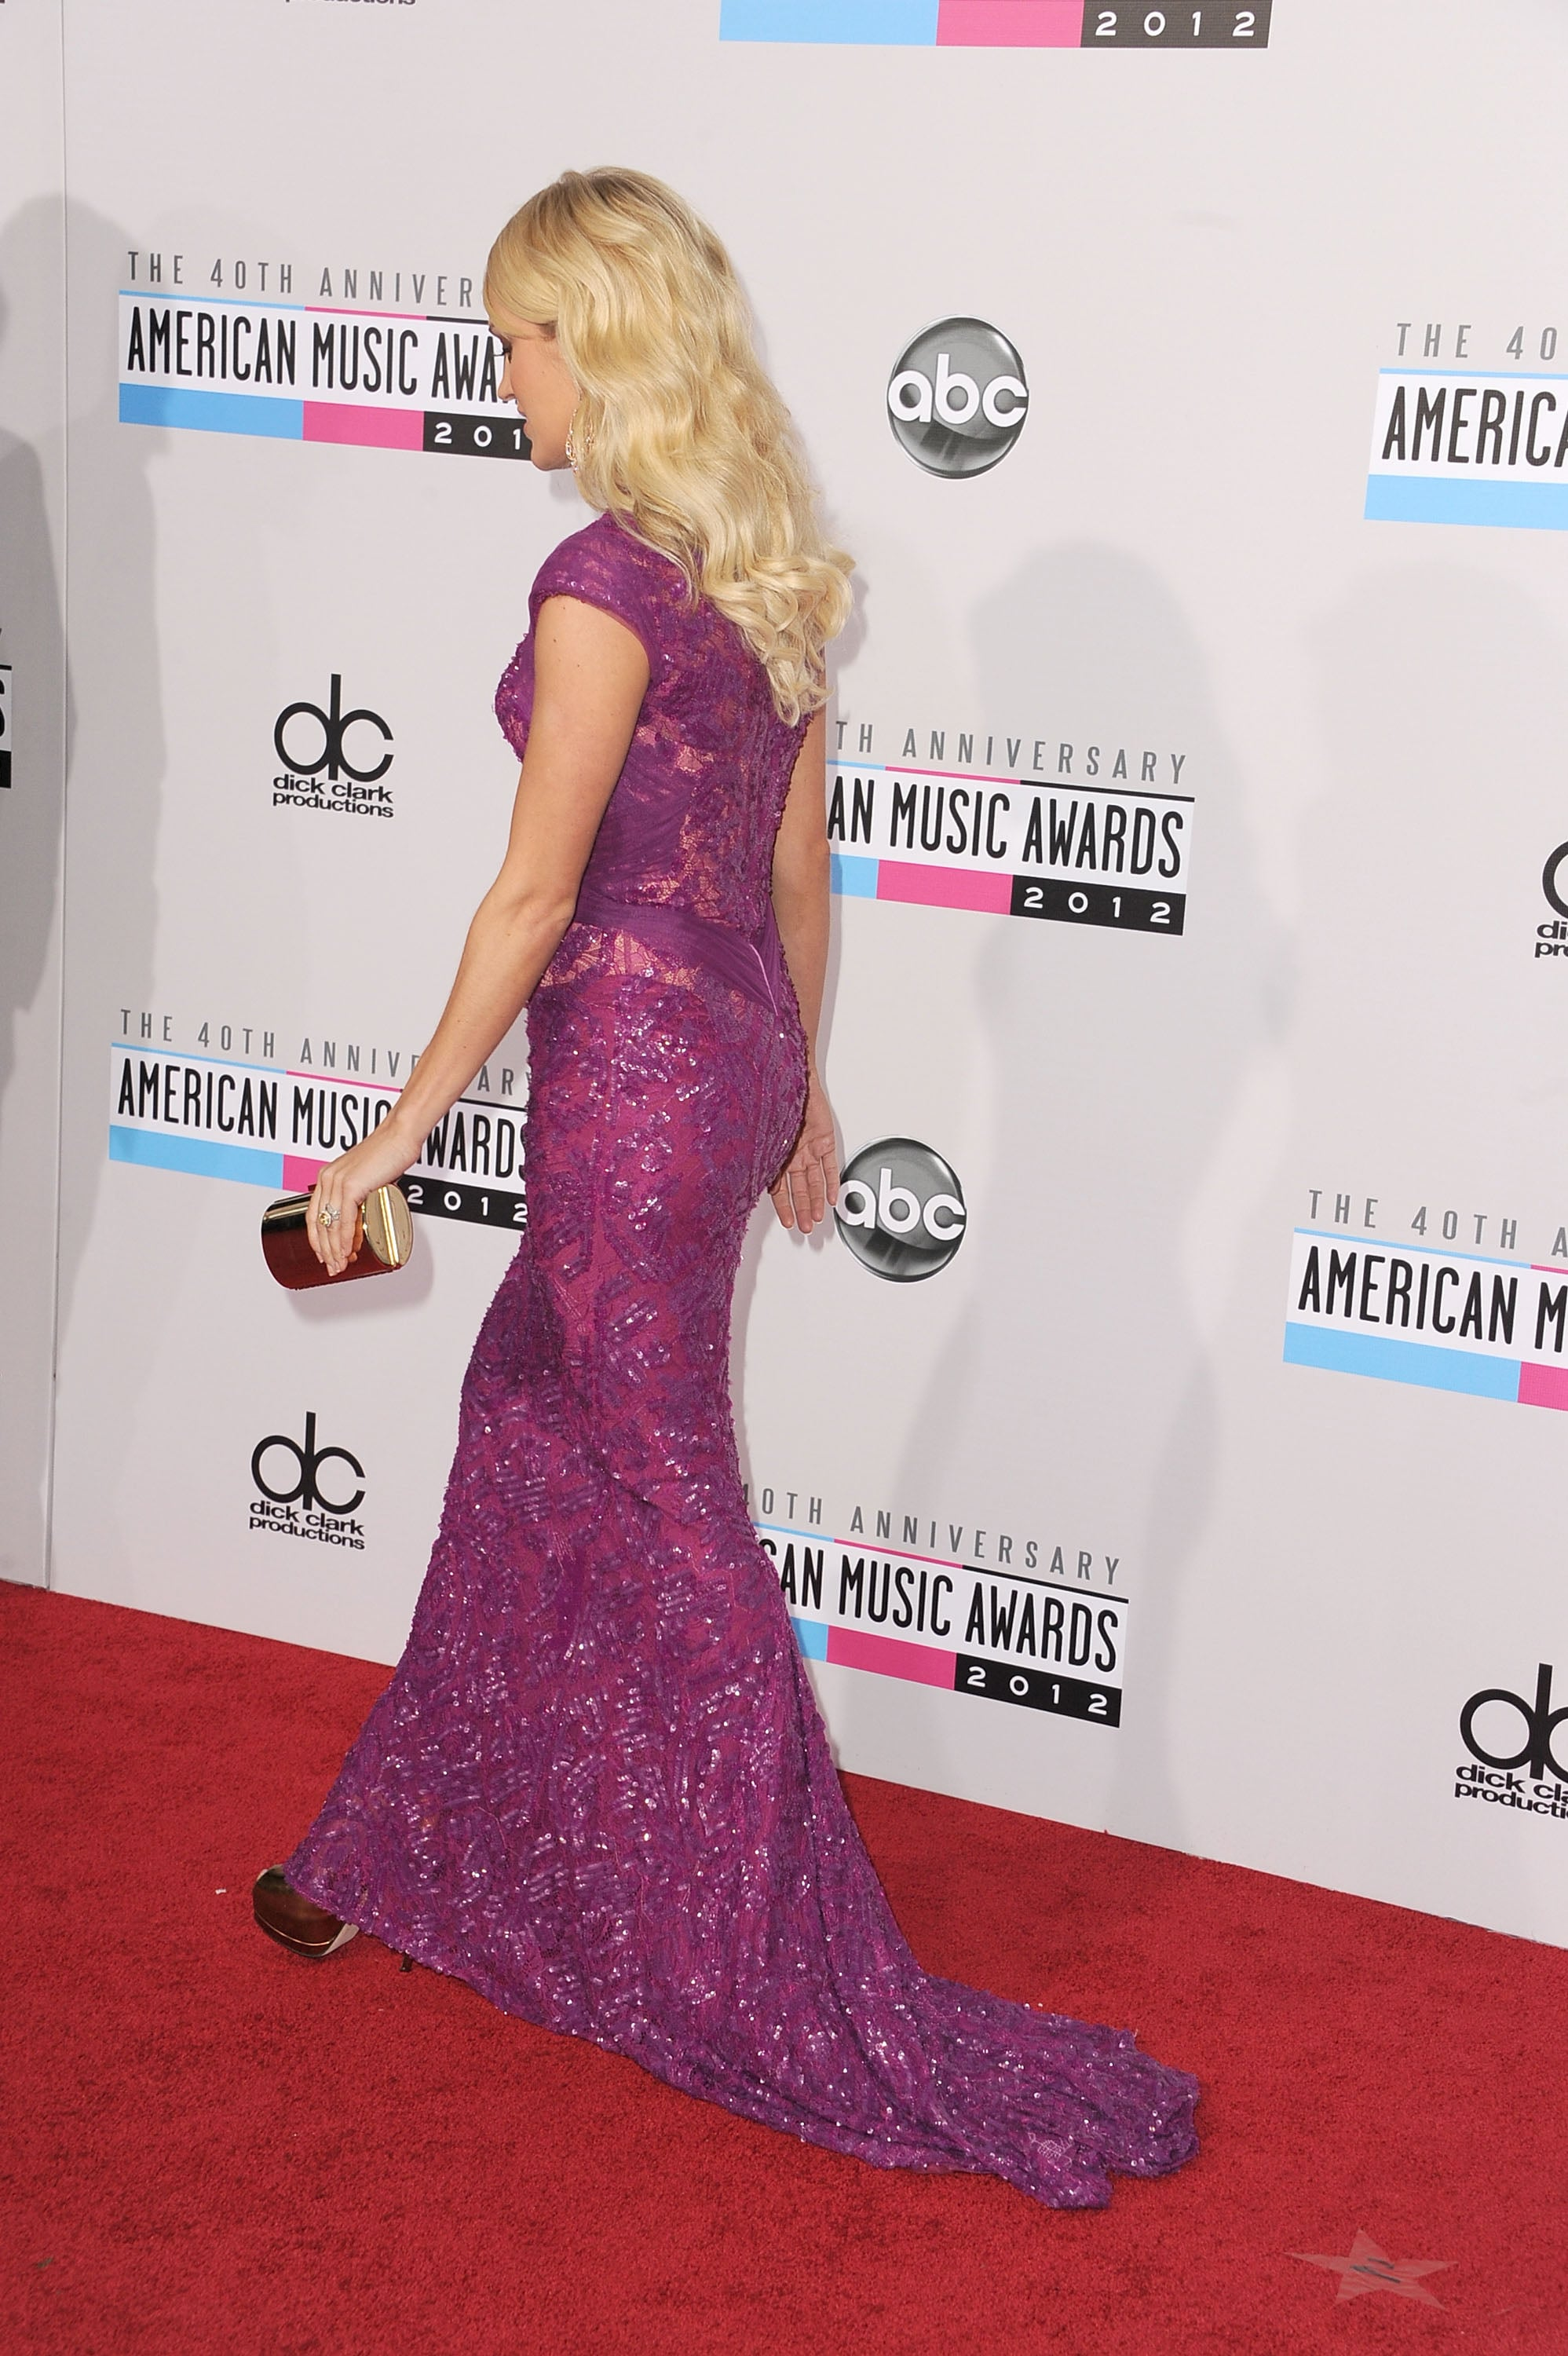 Carrie Underwood headed inside the American Music Awards.